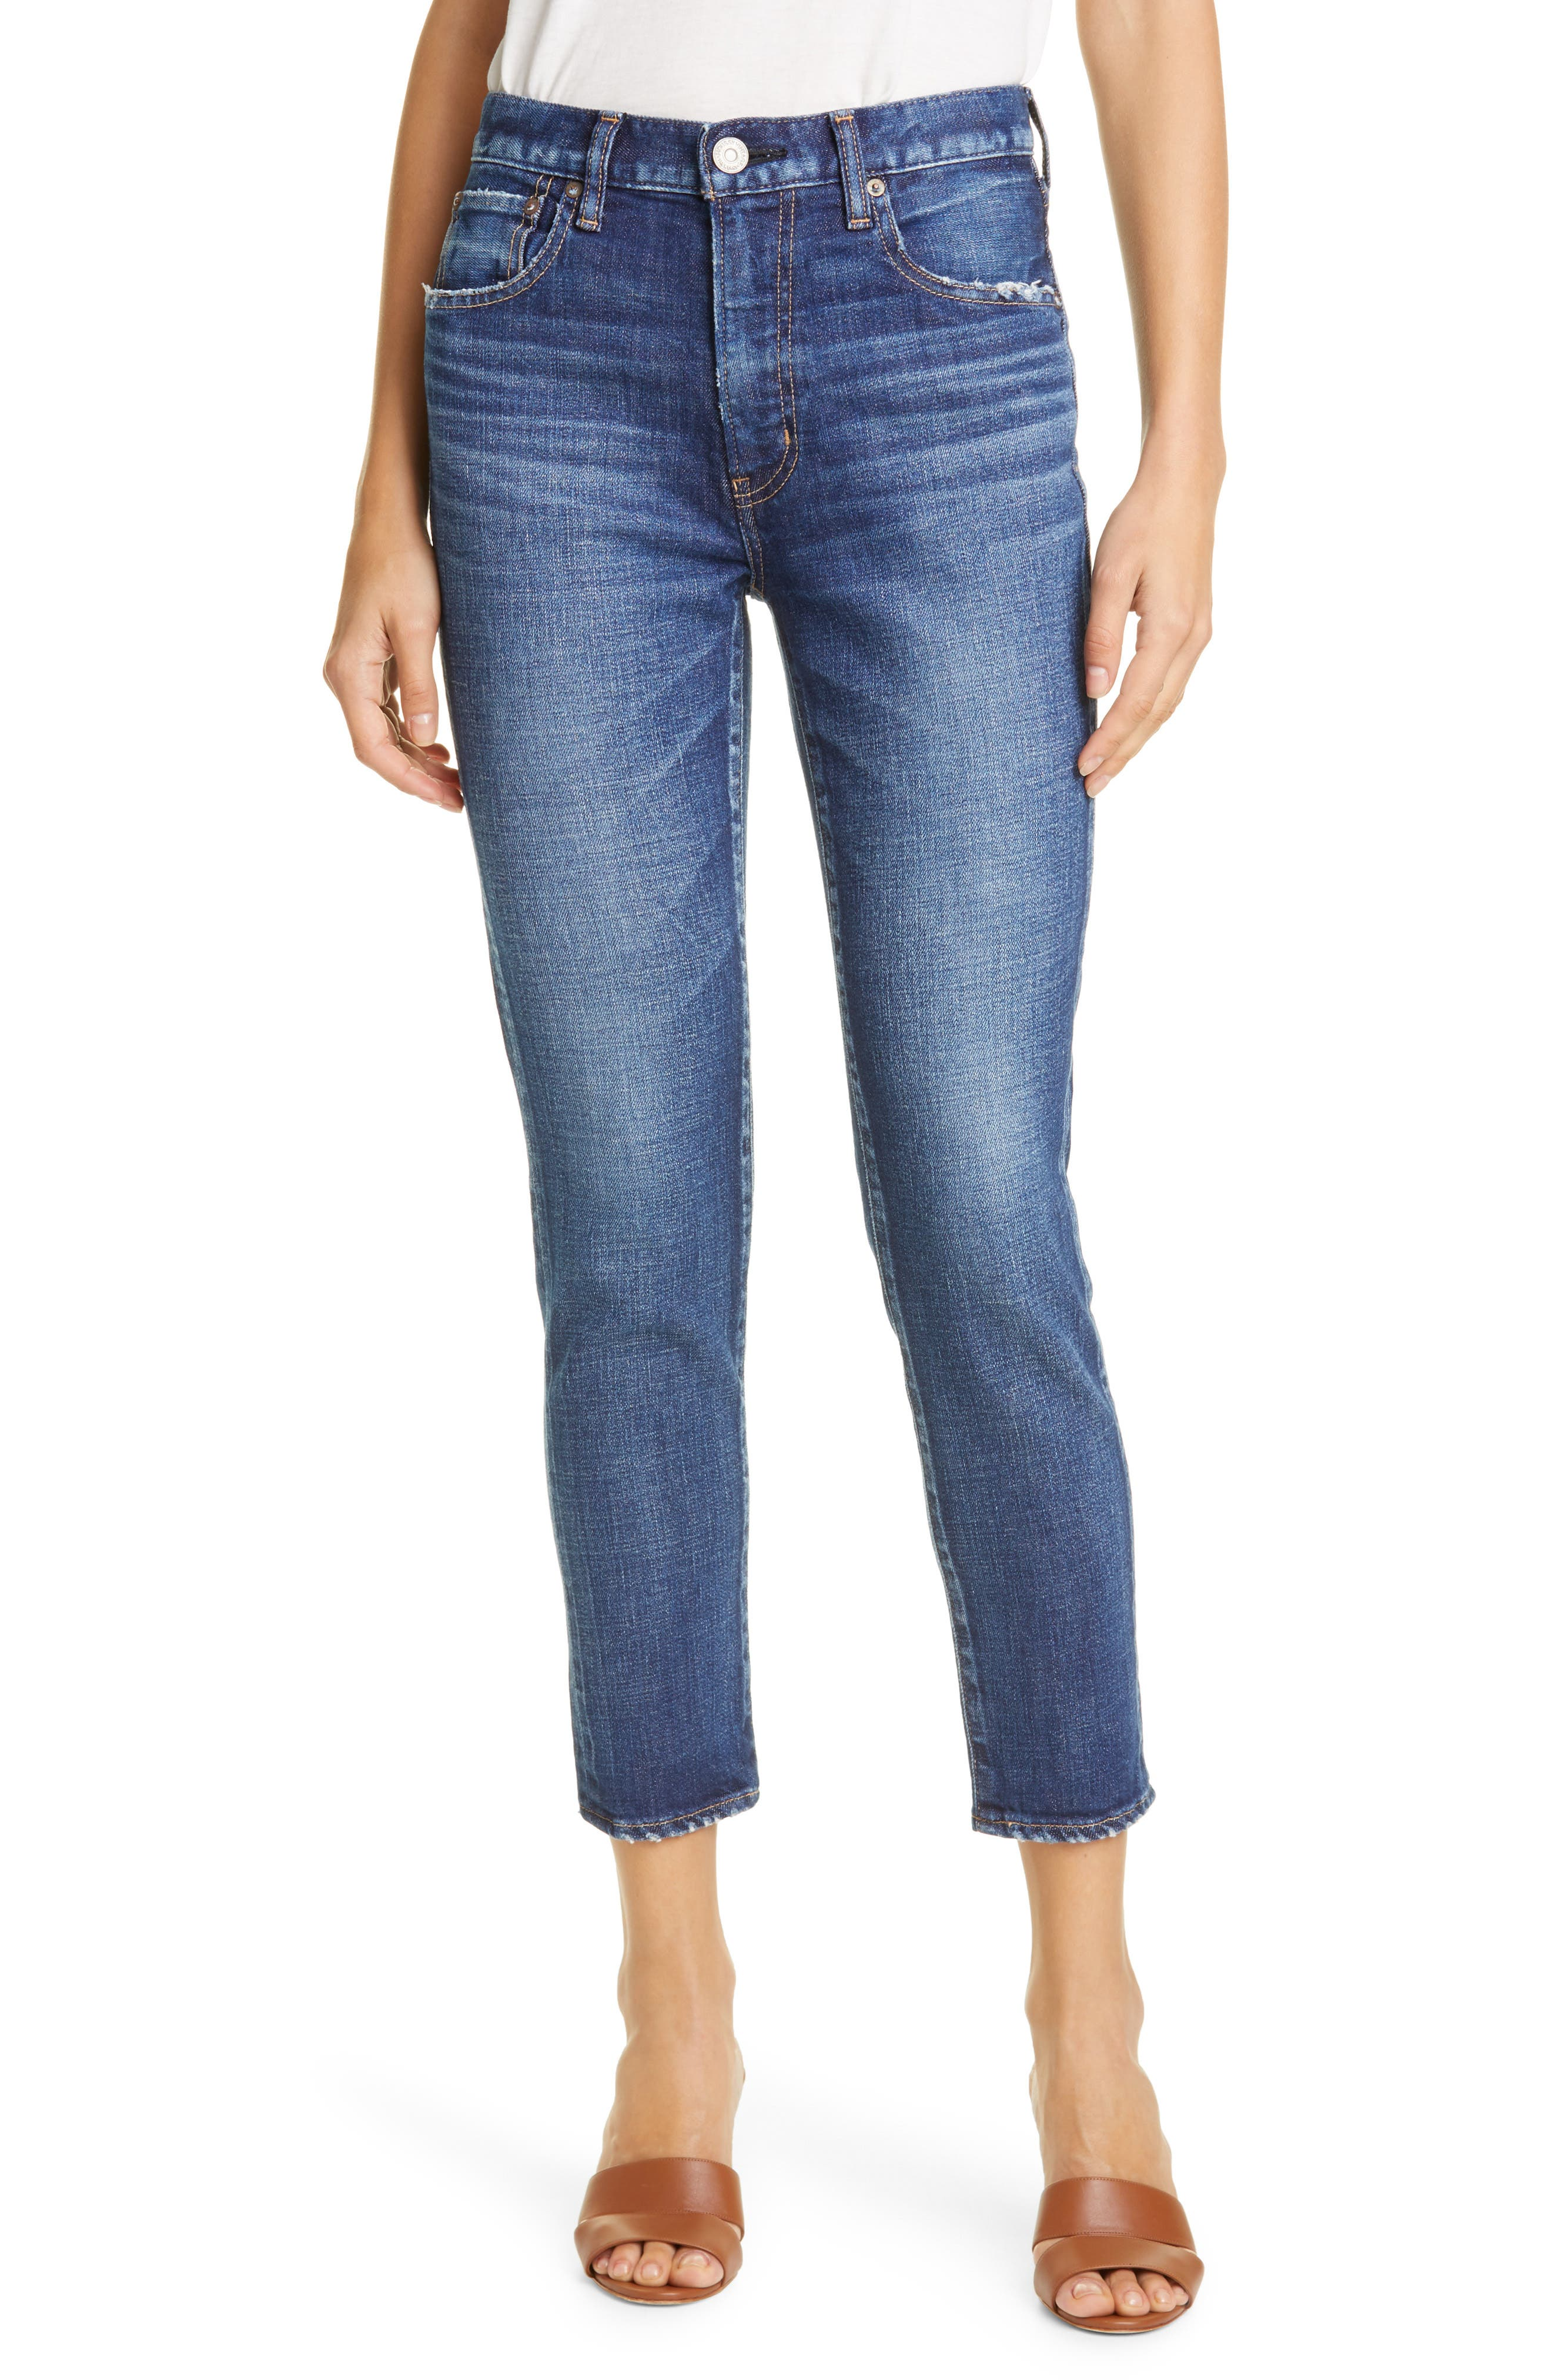 Cameron Ankle Skinny Jeans